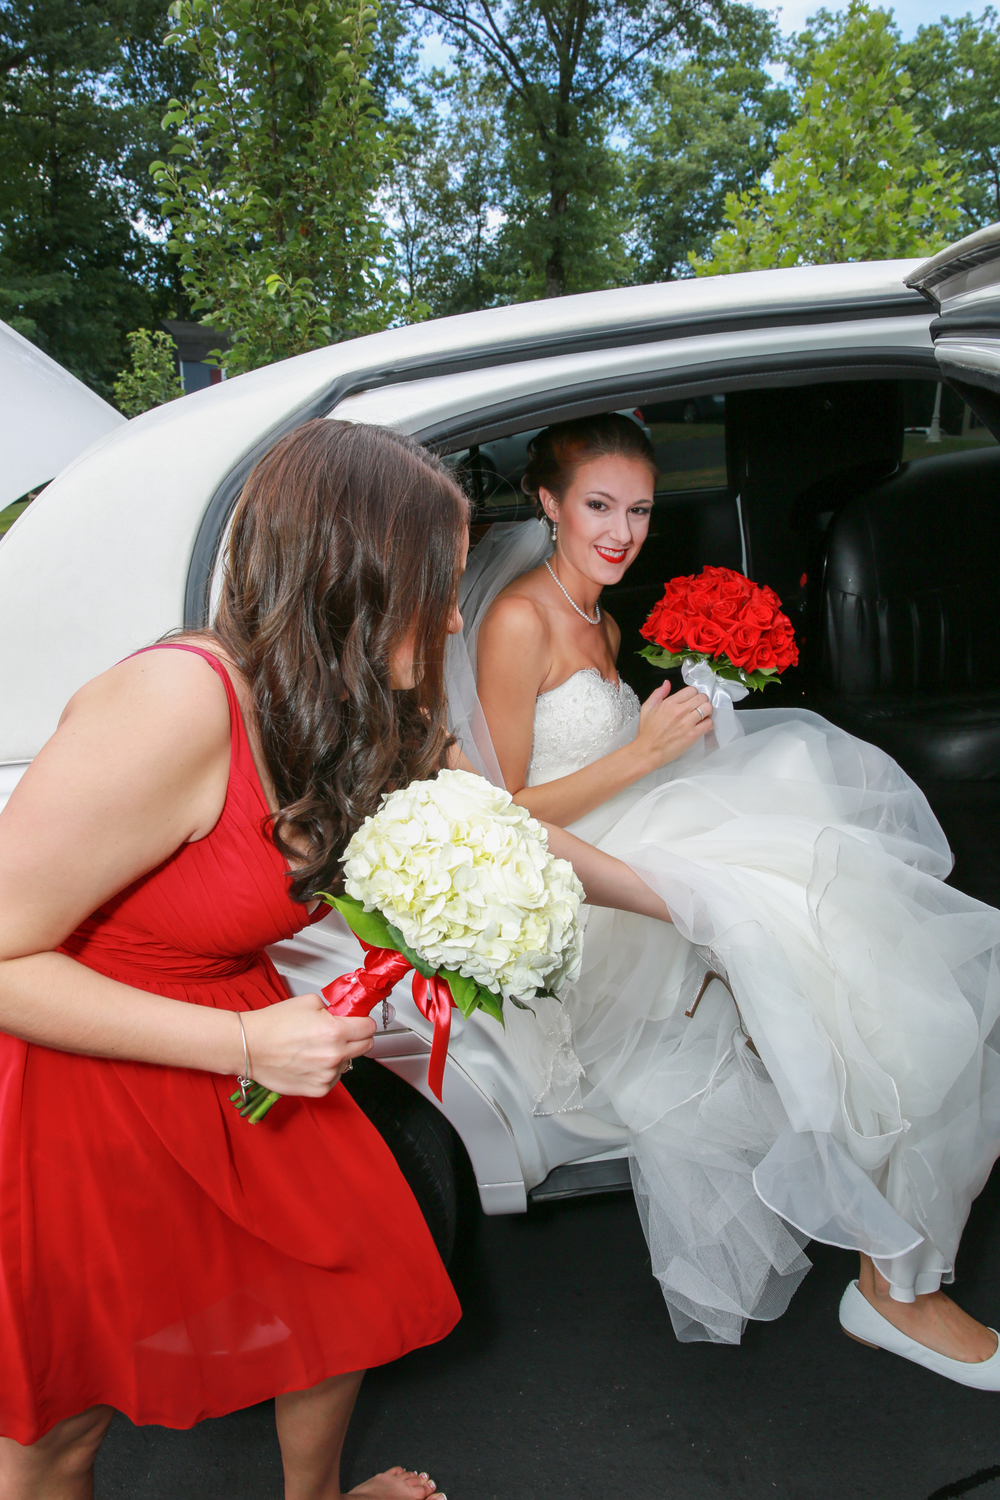 Sister of the bride helping her into the limo